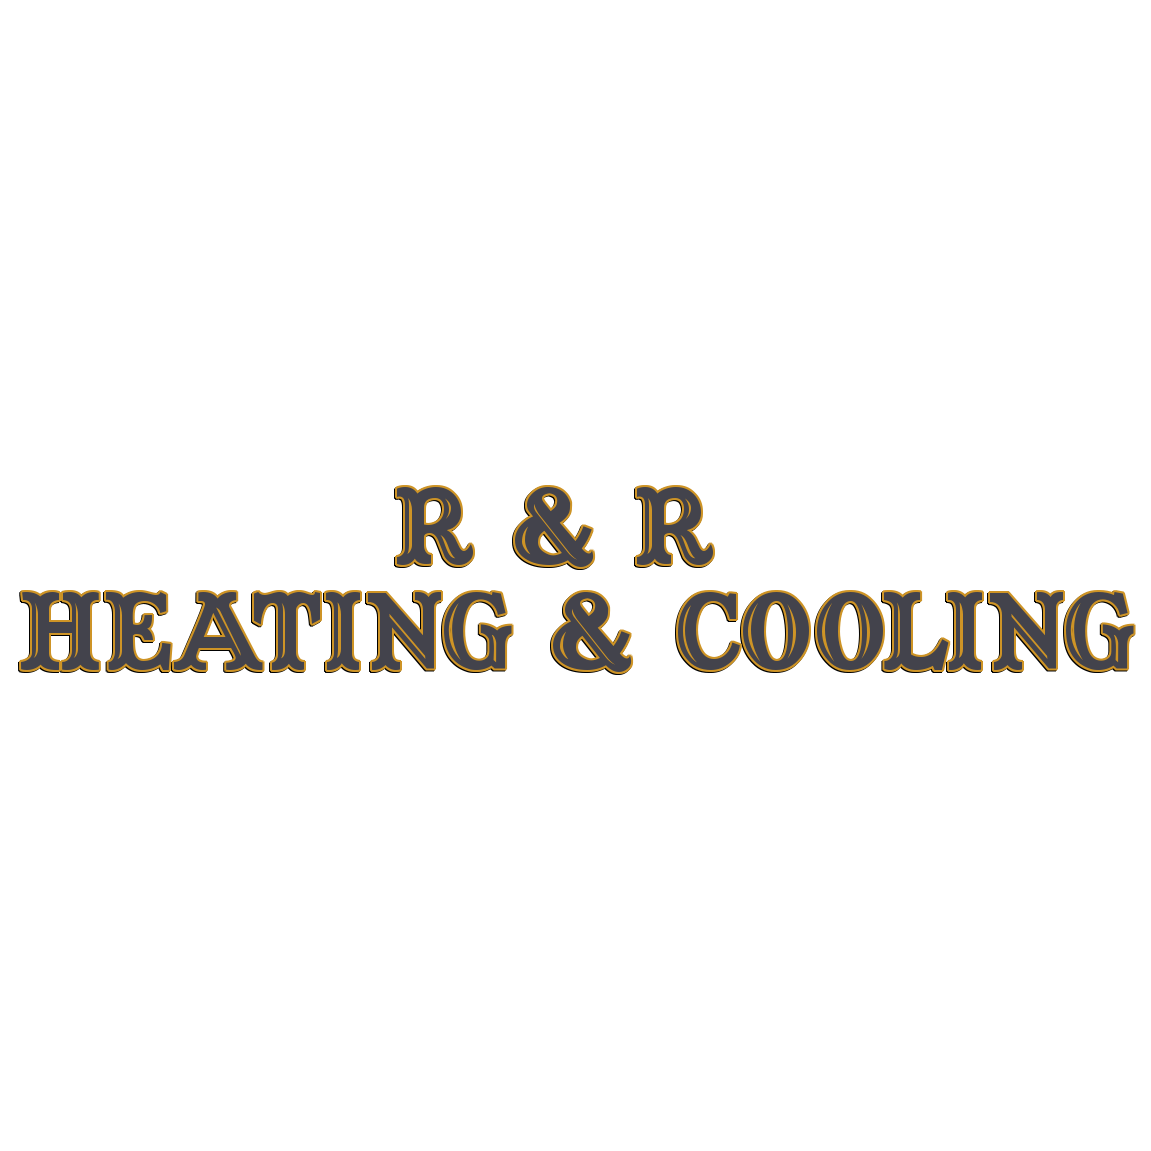 R & R Heating & Cooling - Lebanon, MO 65536 - (417)532-4747   ShowMeLocal.com